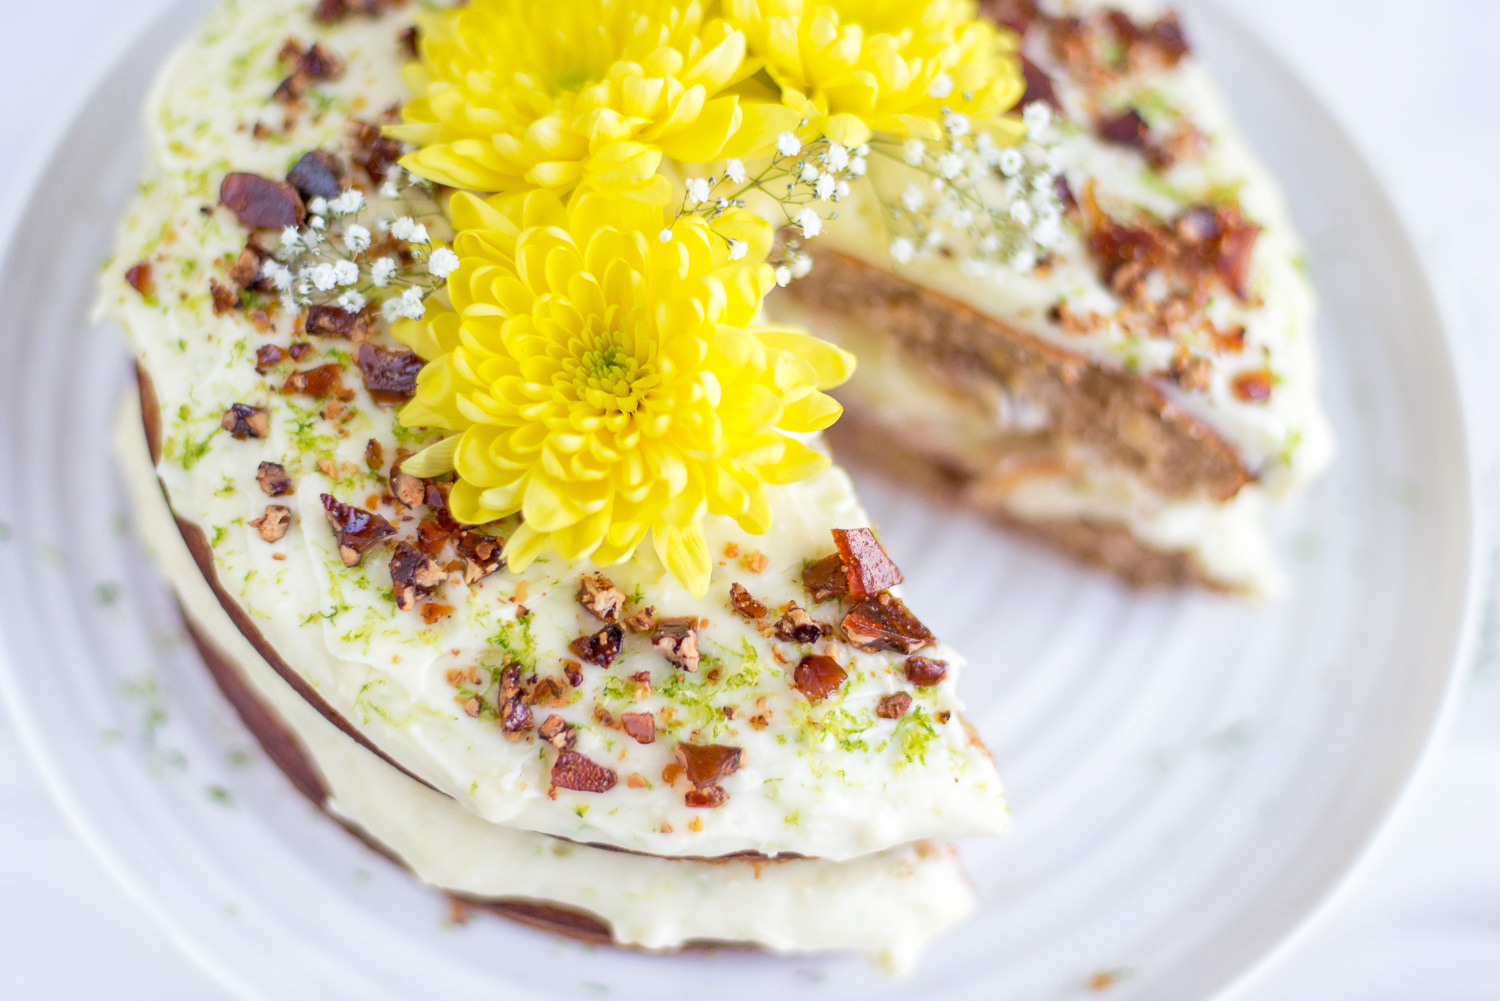 Hummingbird Cake from Jamie Oliver Comfort Food Mondomulia